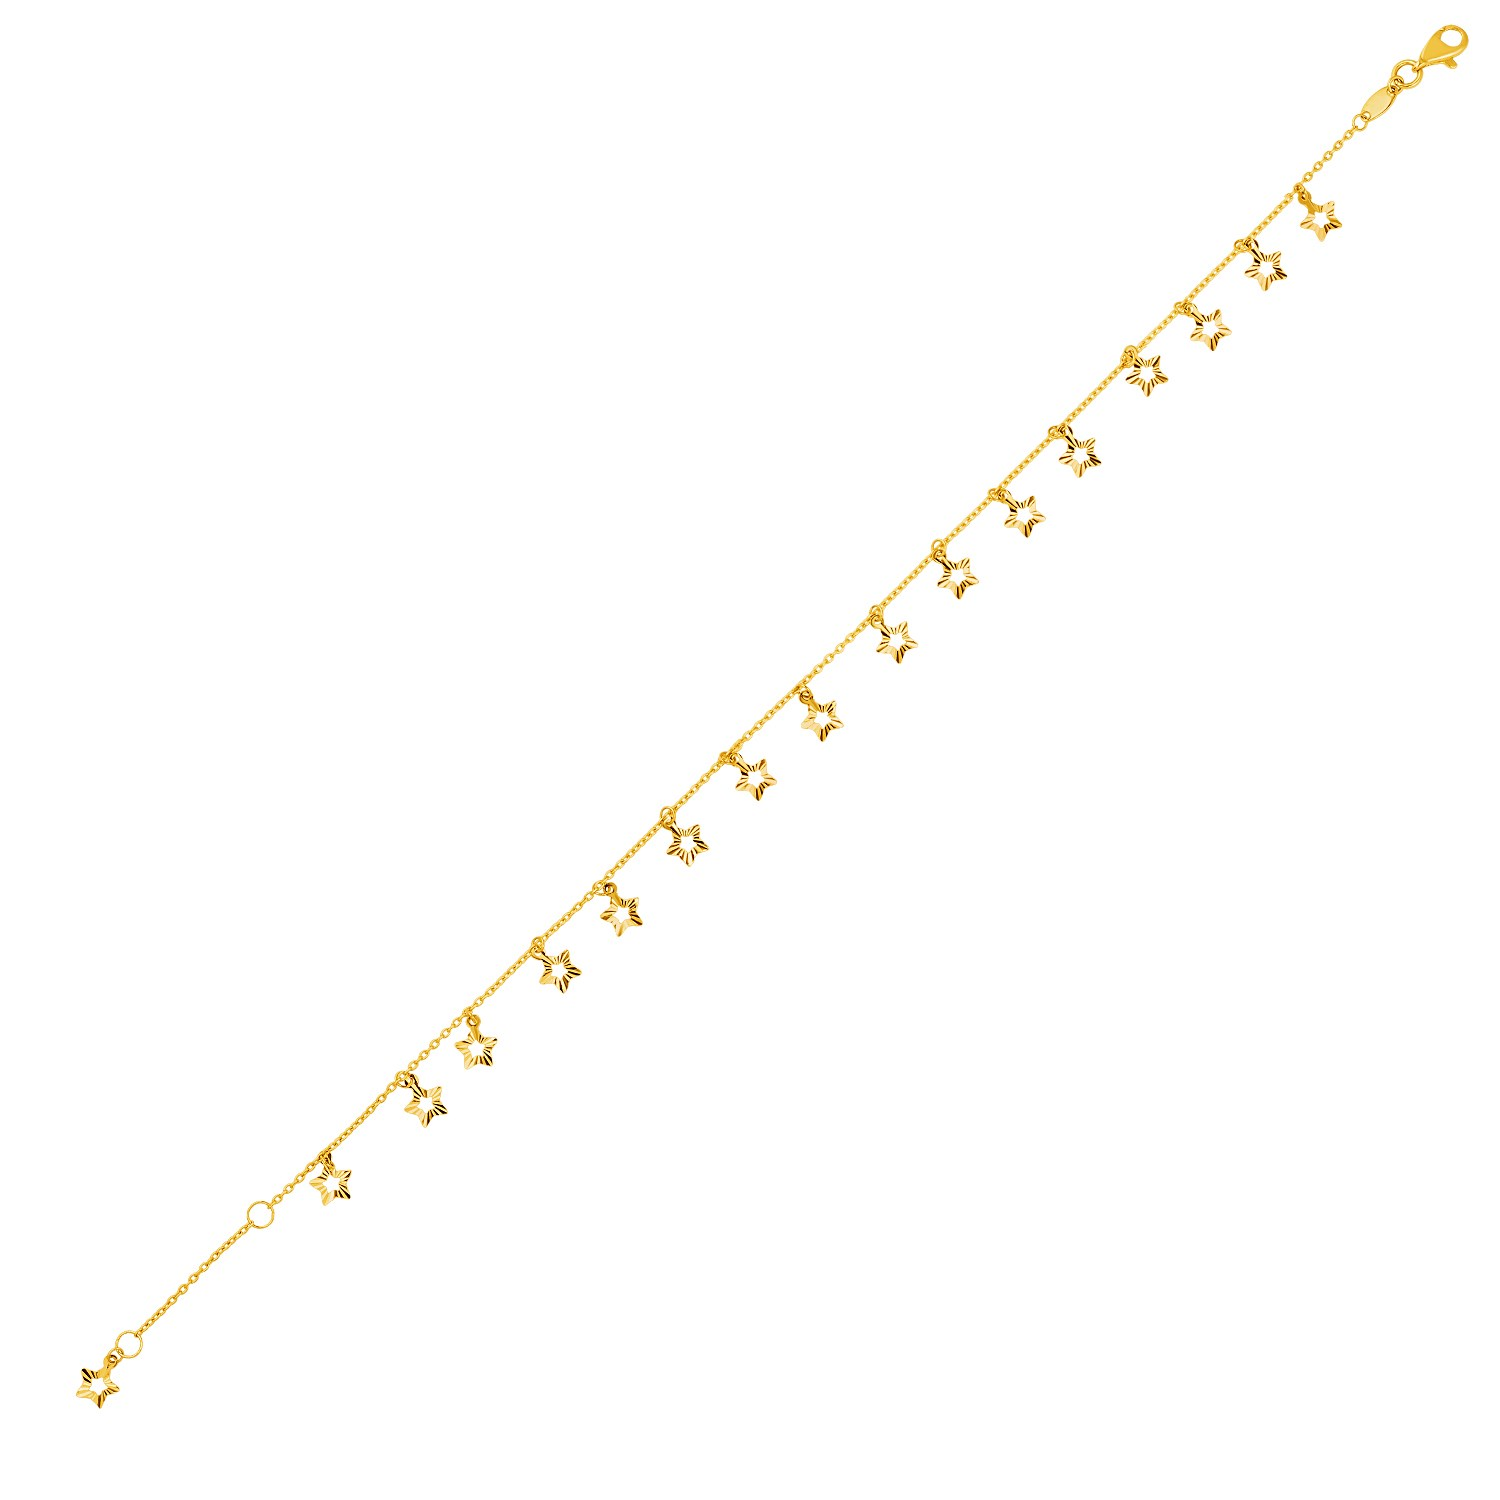 frost gold move london jewellery uk image from ankle uno anklet yellow bracelet anklets of